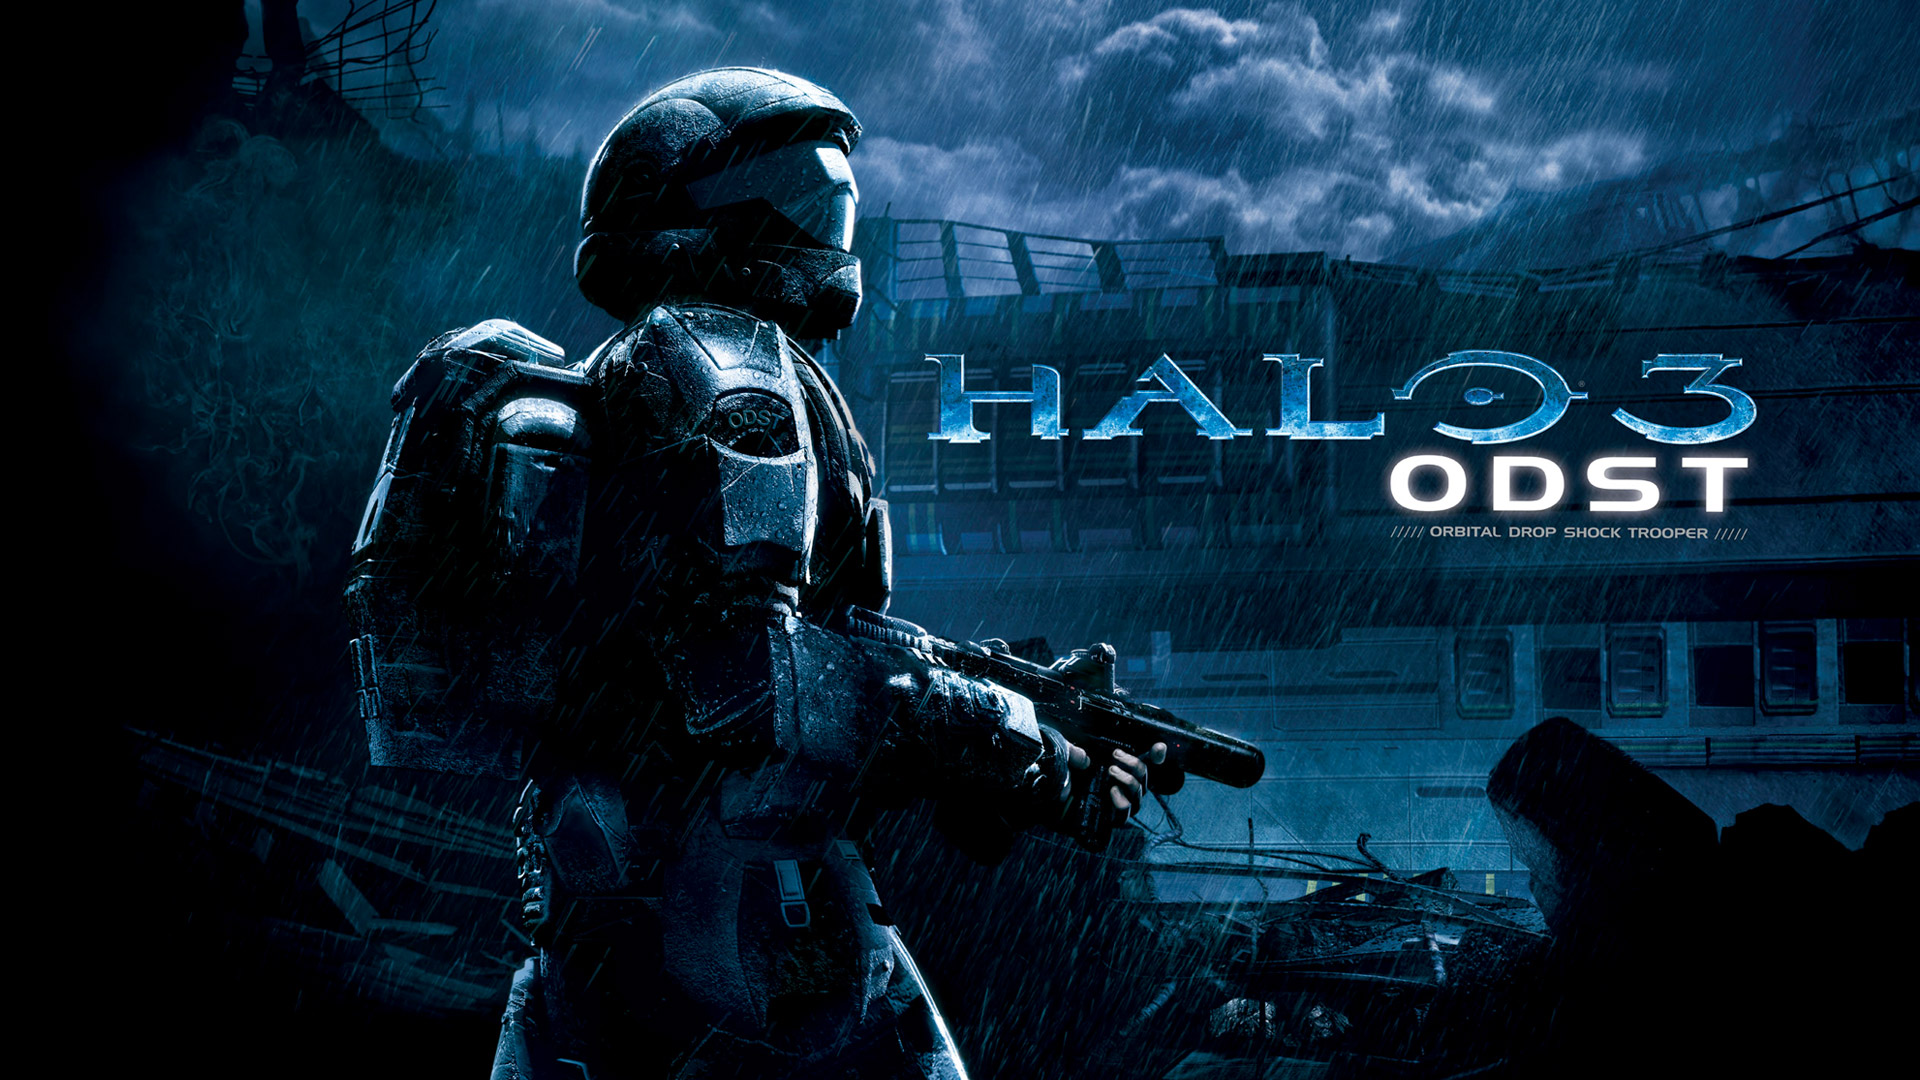 Halo 3: ODST Wallpaper in 1920x1080